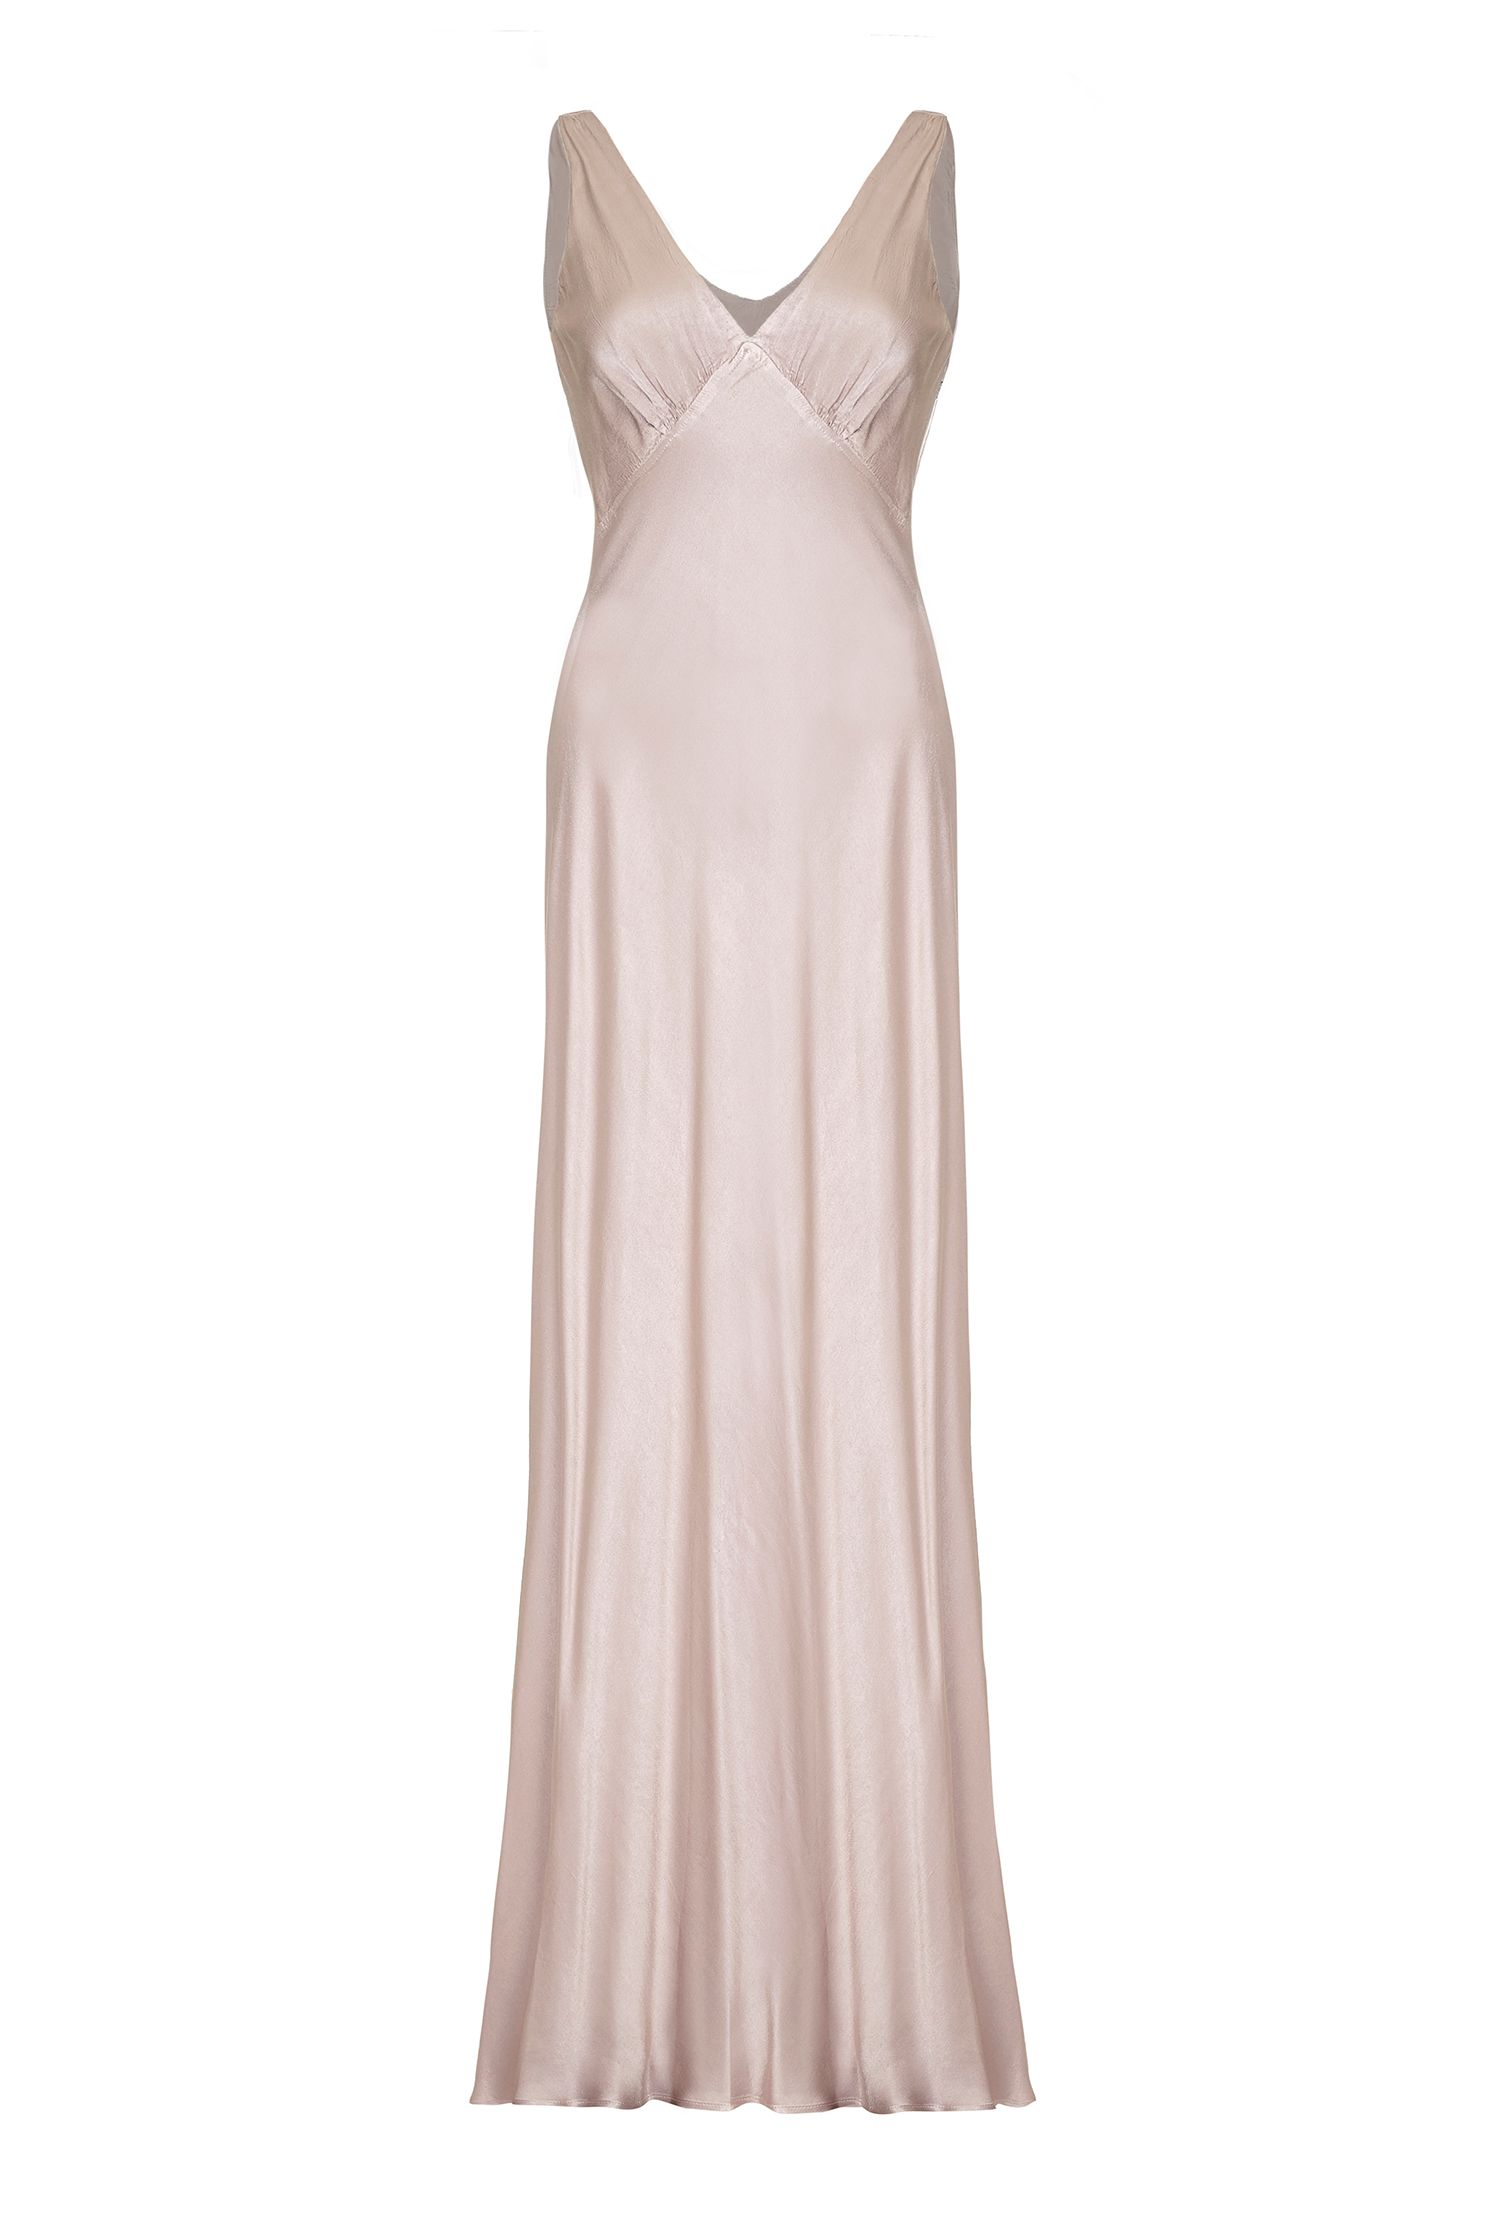 Ghost Pearl Dress, Taupe